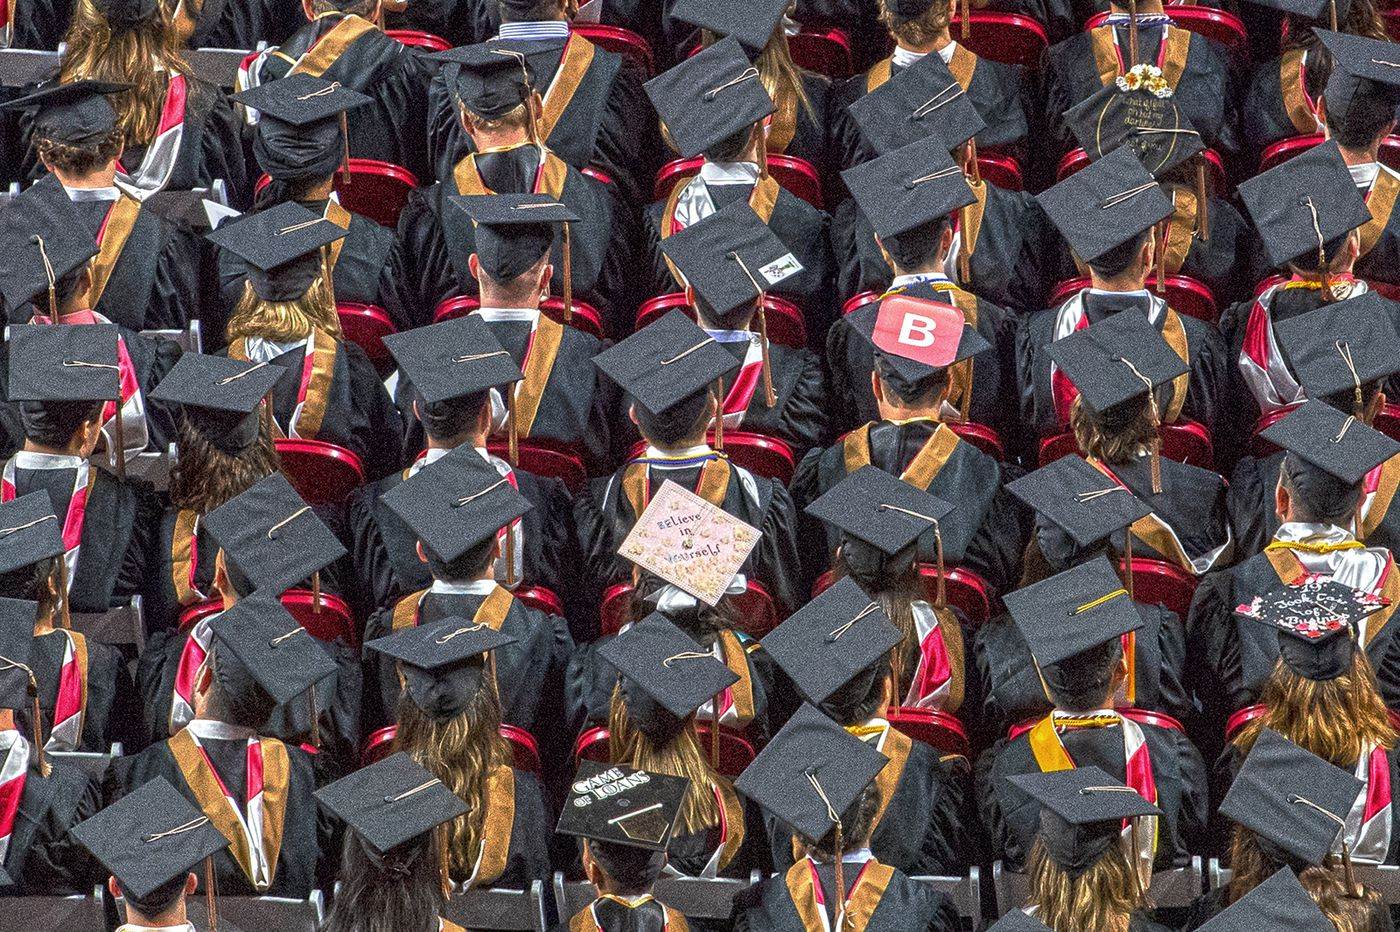 Student debt is delaying progress for an entire generation | Opinion